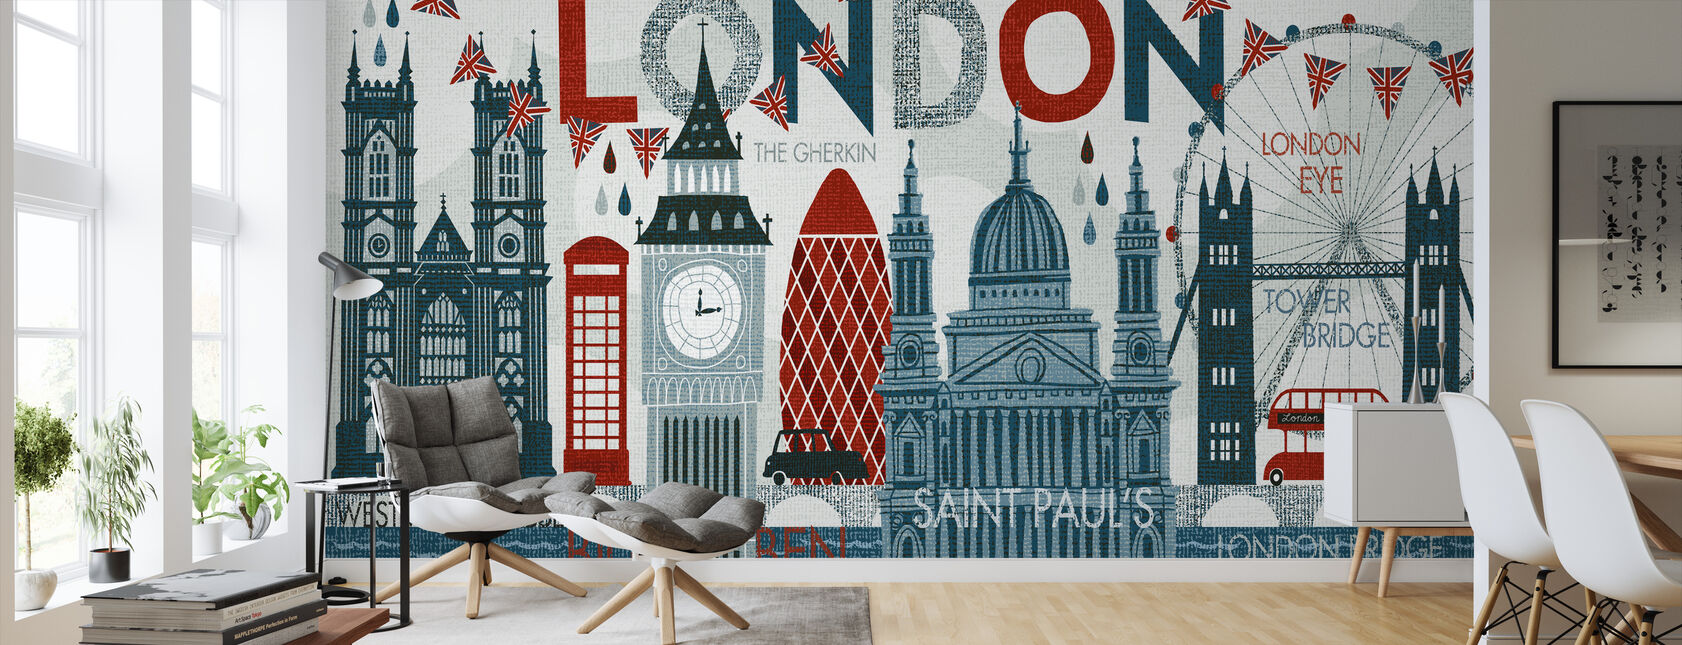 Hello London - Wallpaper - Living Room